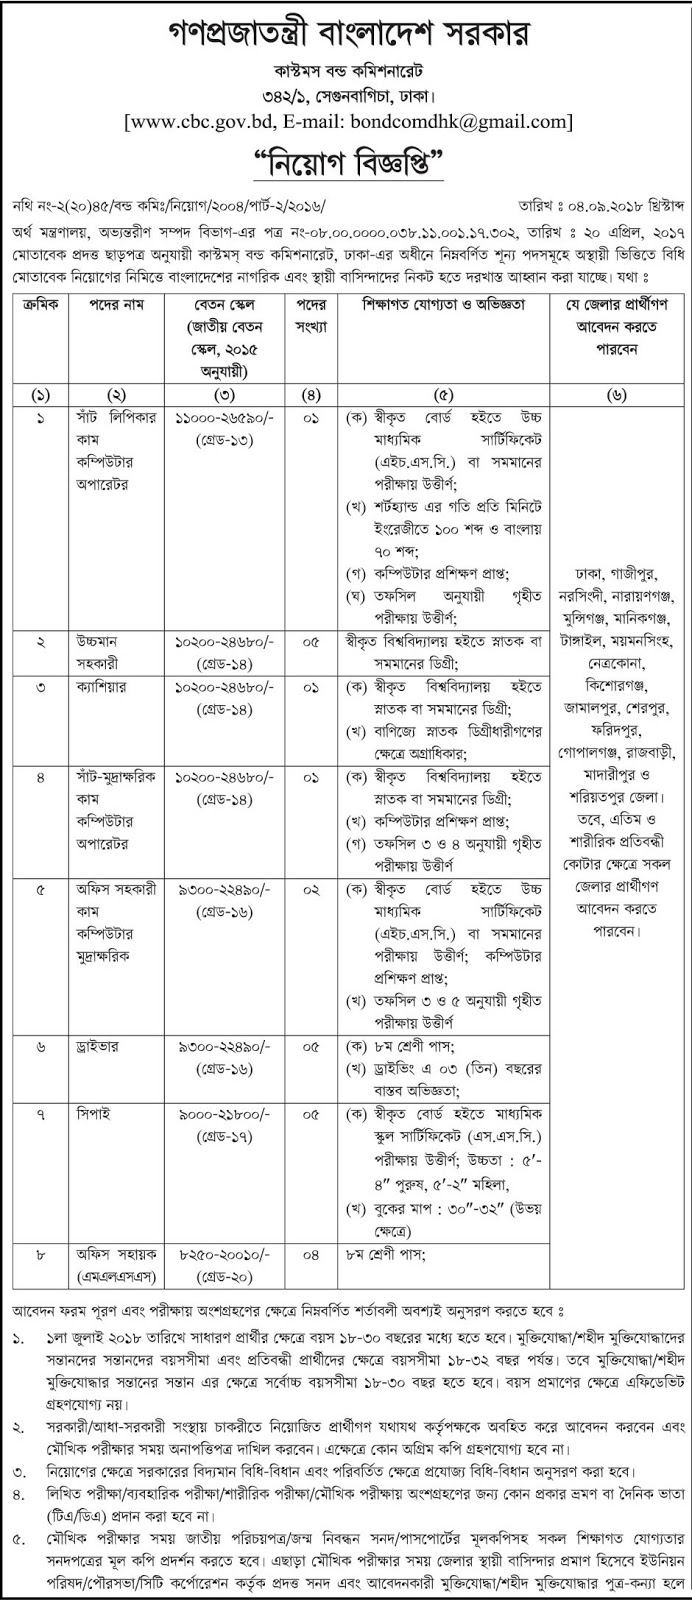 Customs Bond Commissionerate (CBC) Job Circular 2018